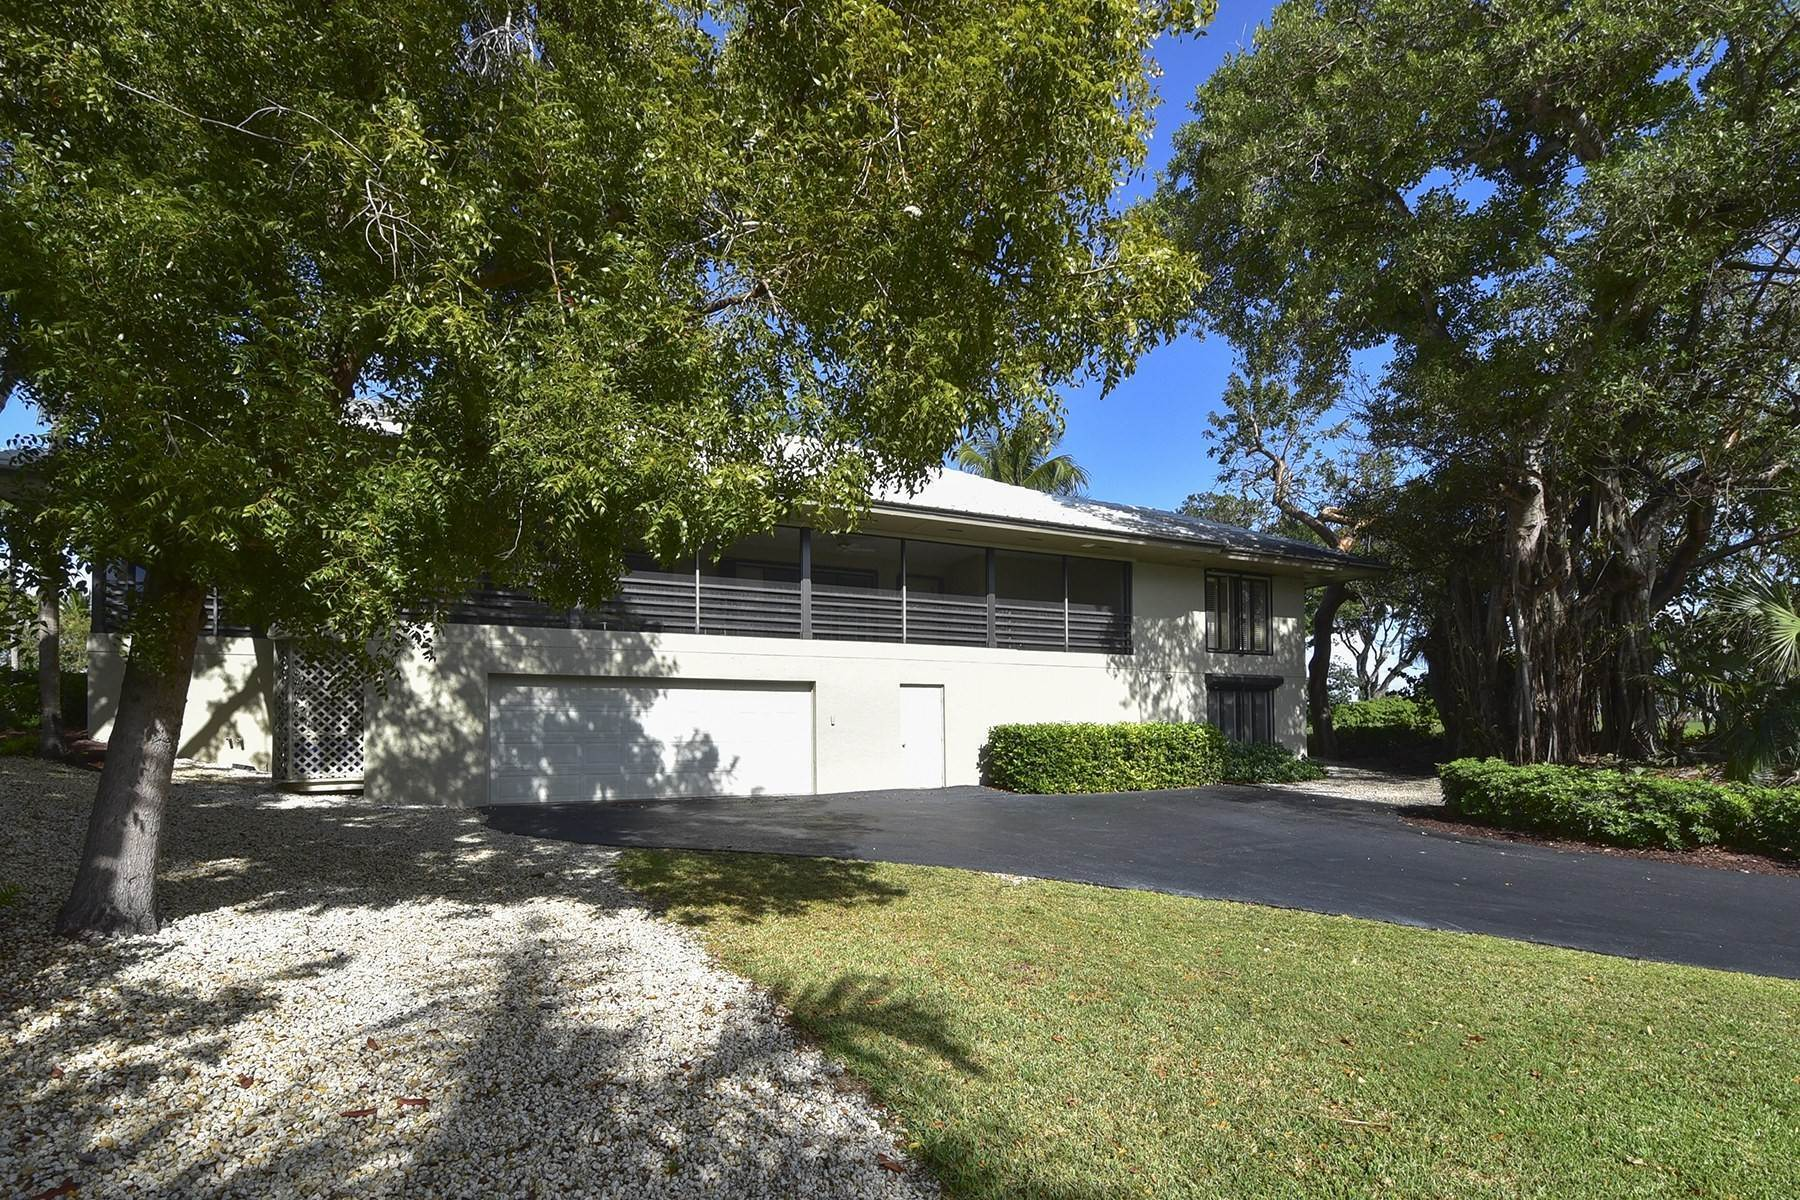 6. Property for Sale at 10 Cannon Point, Key Largo, FL Key Largo, Florida 33037 United States